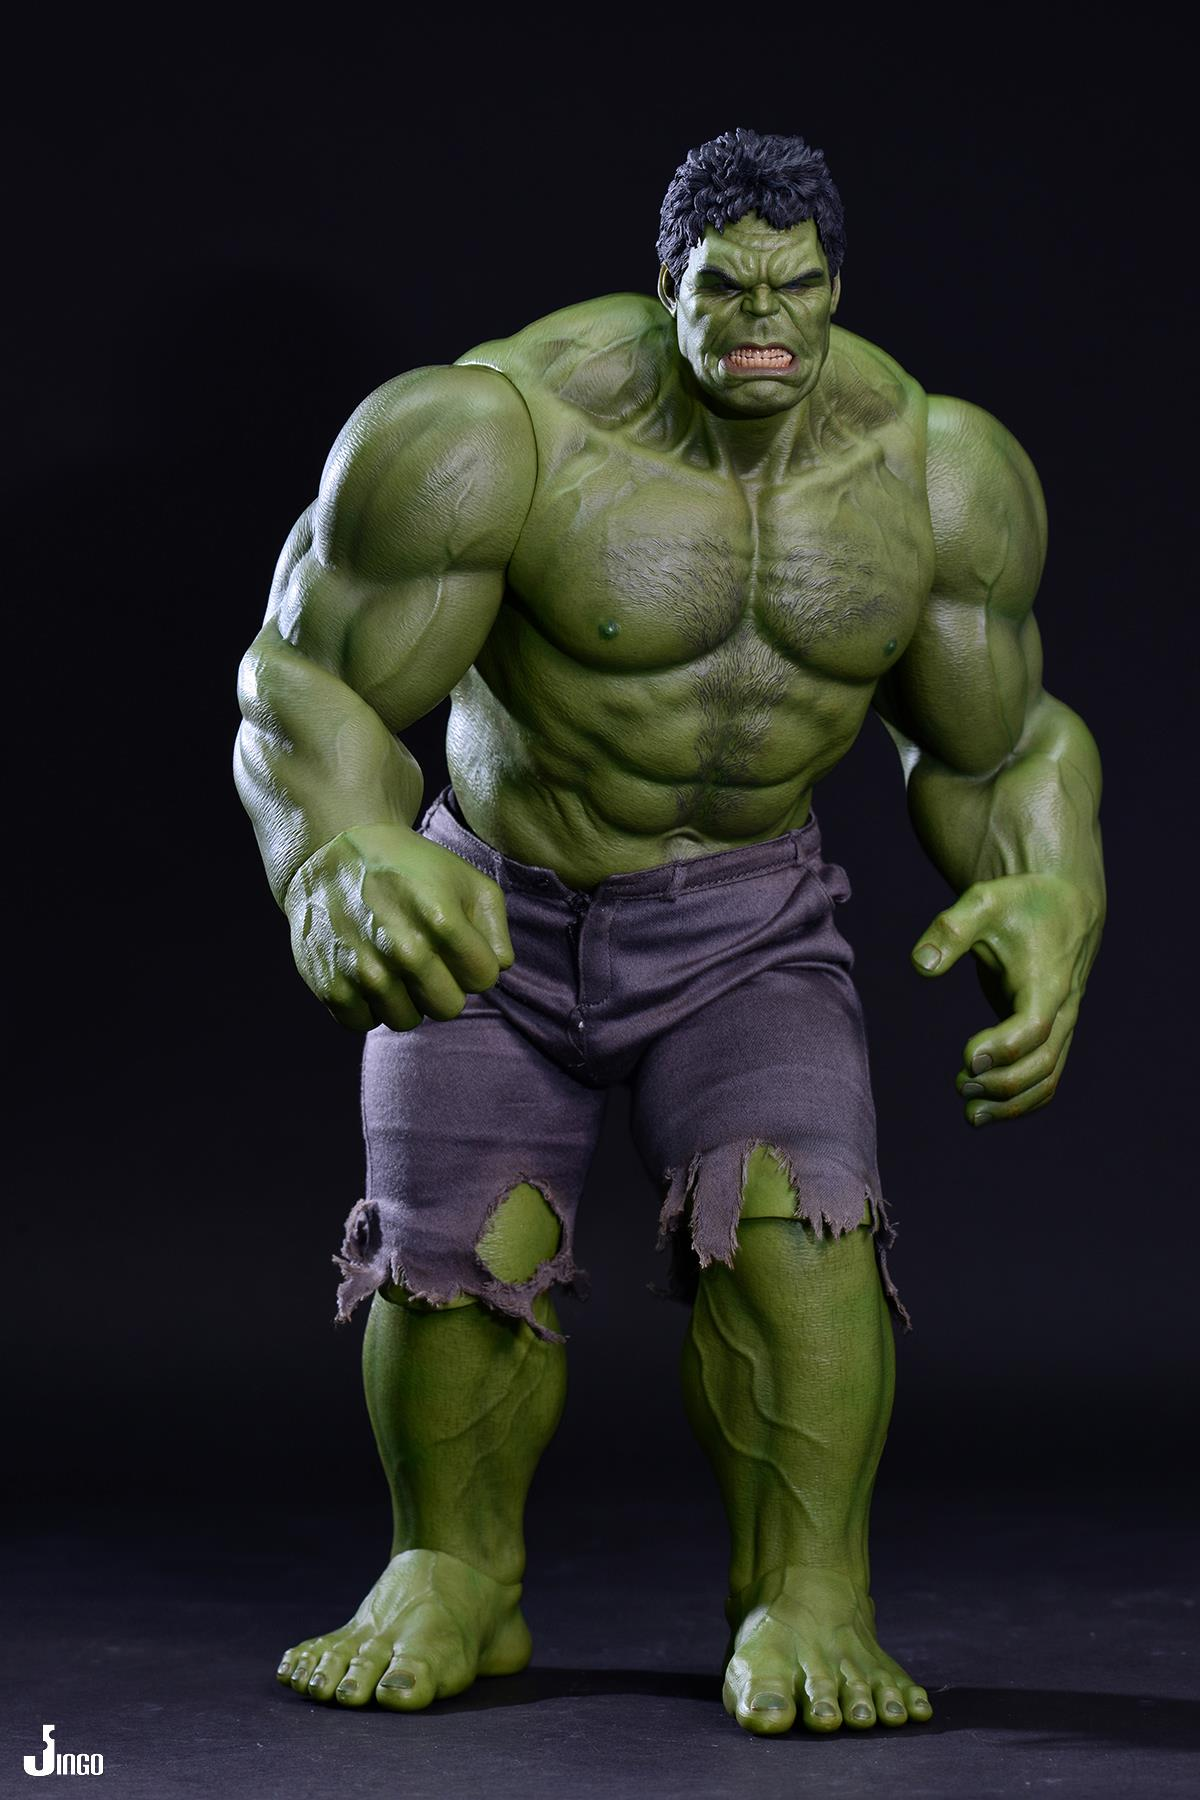 Hot Toys Mms186 The Avengers Hulk 16 Scale Action Figure